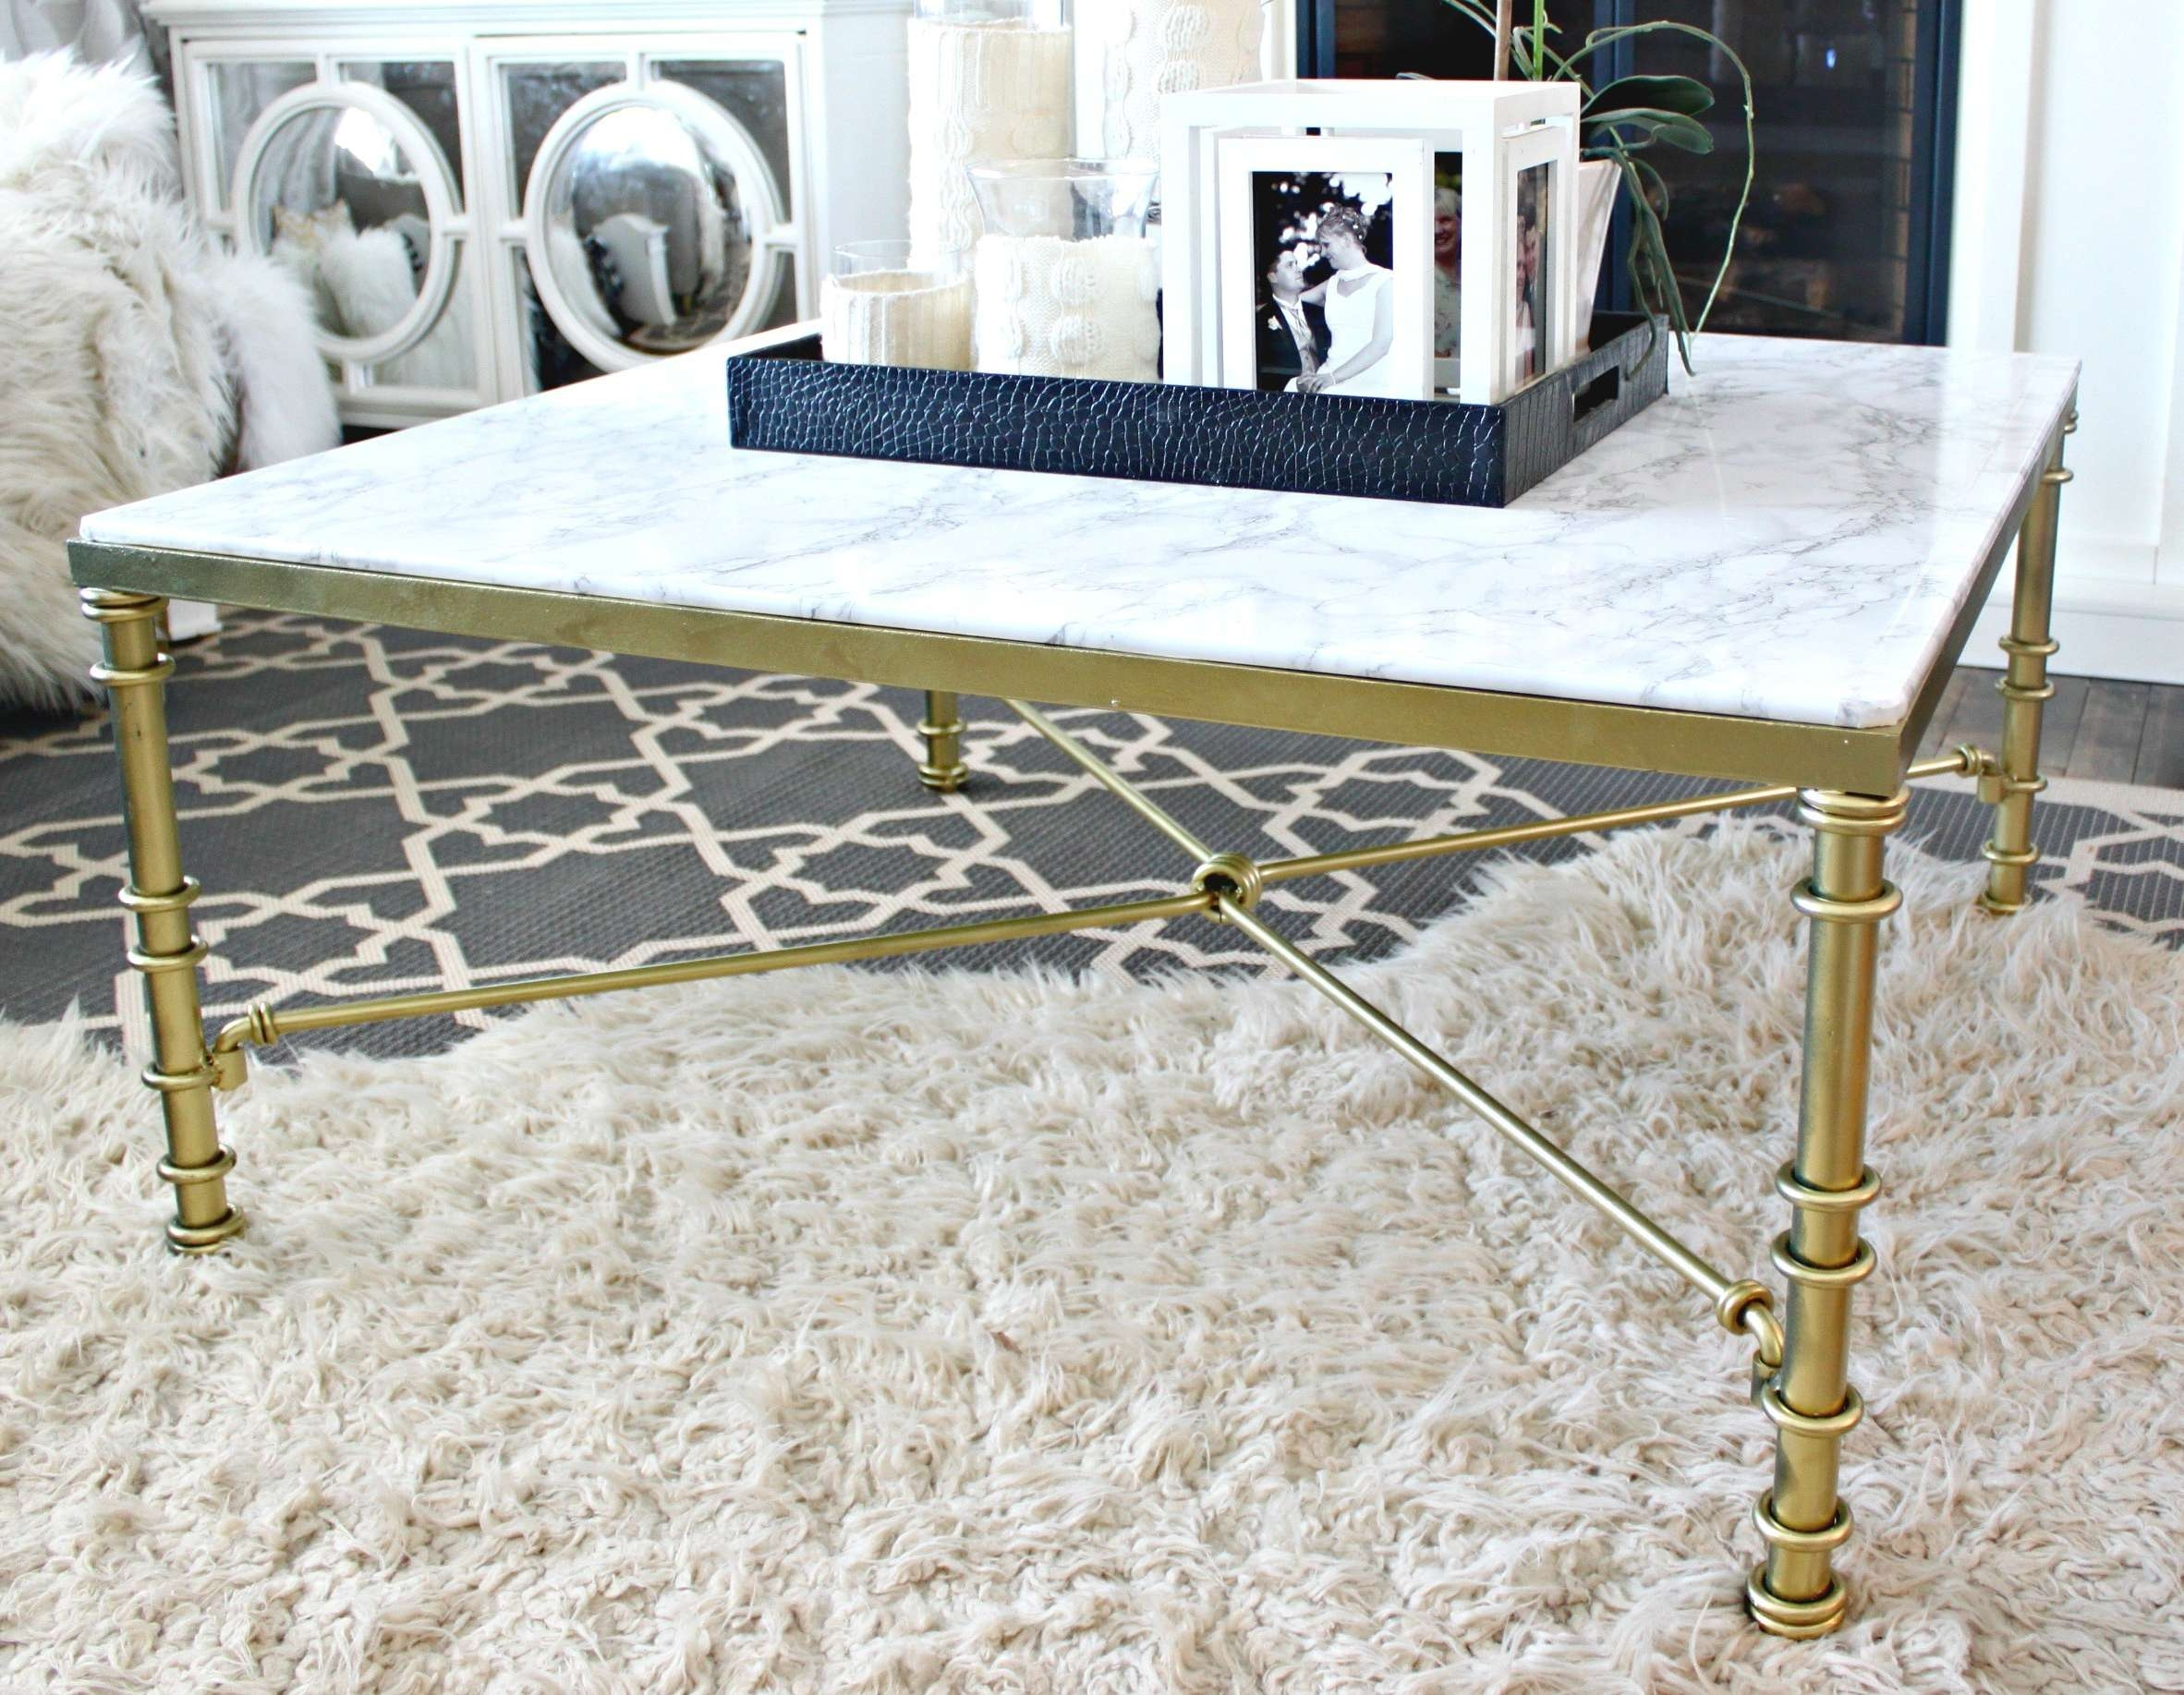 Newest Marble And Glass Coffee Table Within Diy Faux Marble Coffee Table – A Purdy Little House (View 13 of 20)